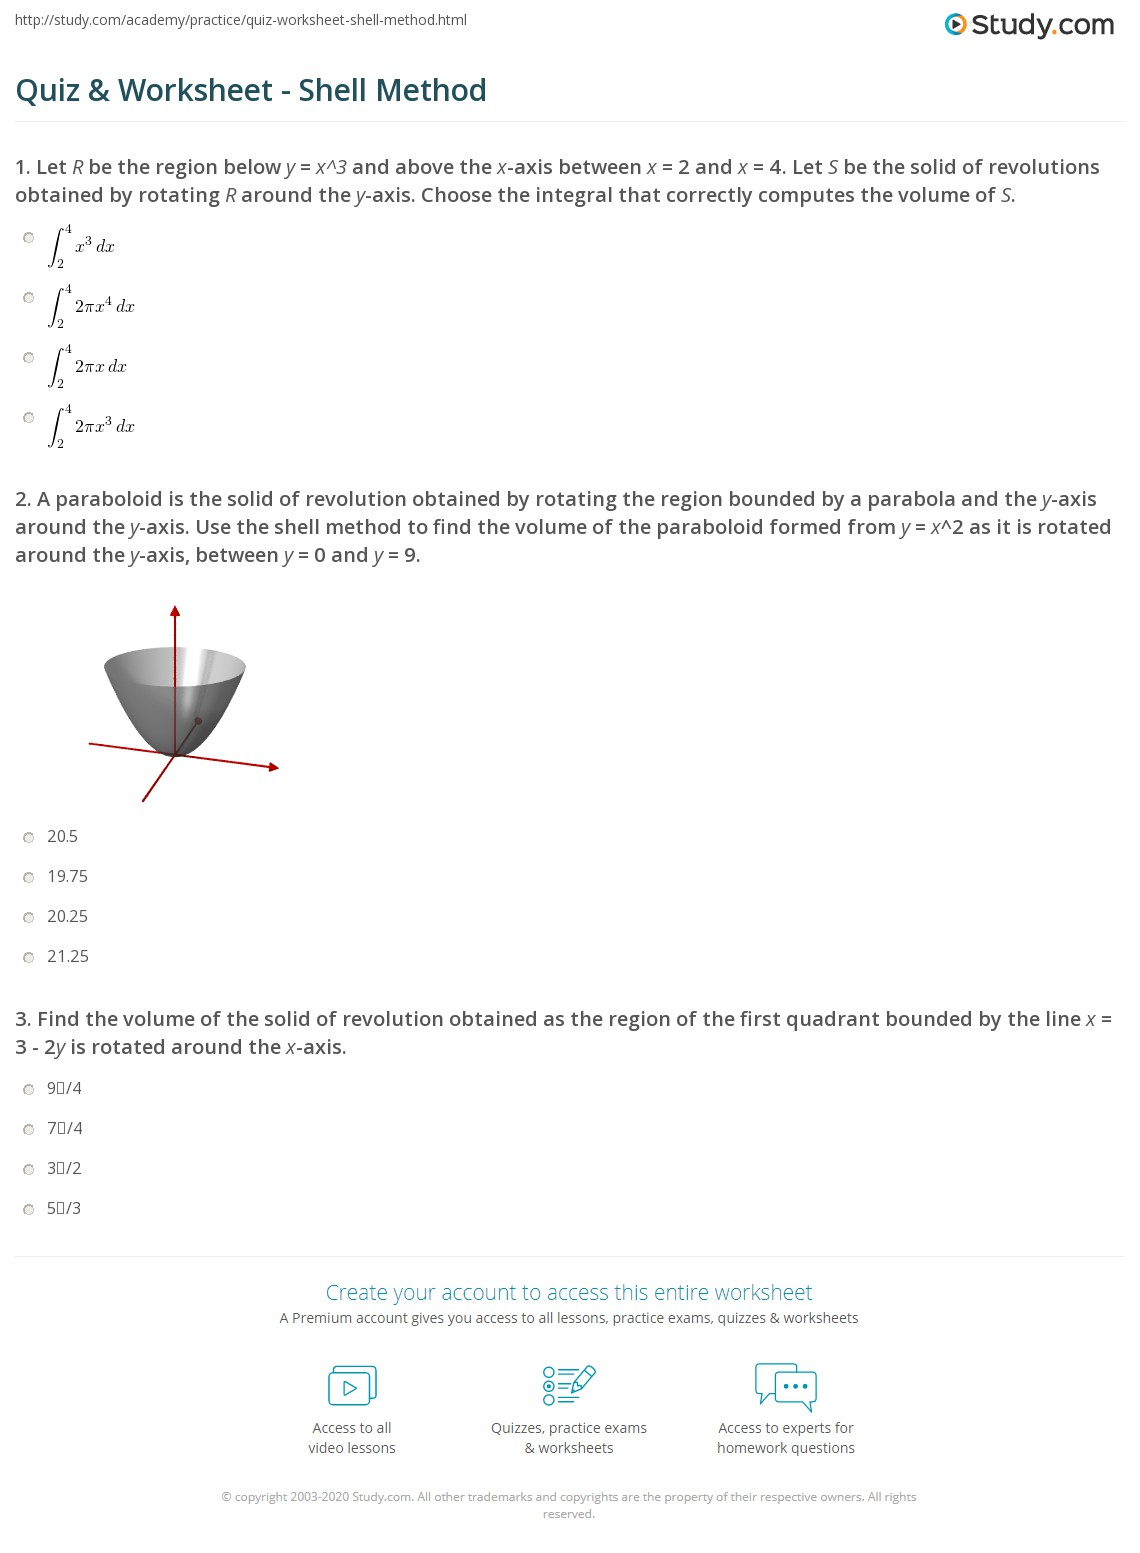 Quiz worksheet shell method study a paraboloid is the solid of revolution obtained by rotating the region bounded by a parabola and the y axis around the y axis use the shell method to find publicscrutiny Choice Image